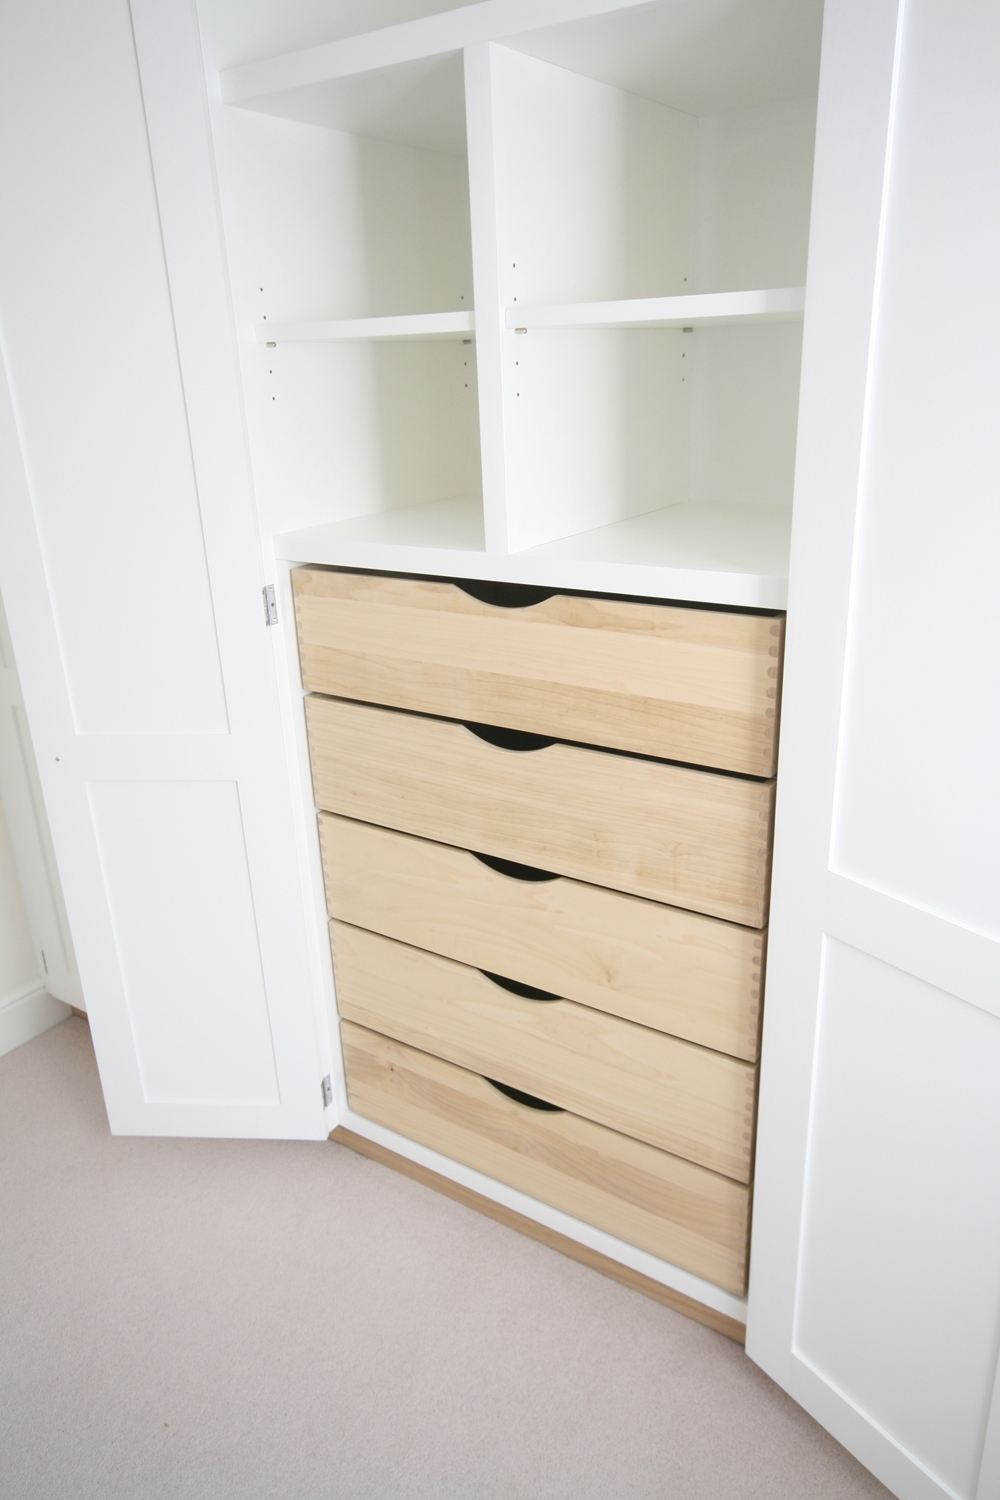 Cheap Wardrobes With Drawers Pertaining To Current Wardrobe Internal Drawers And Pigeon Holes, Enlargement  (View 7 of 15)